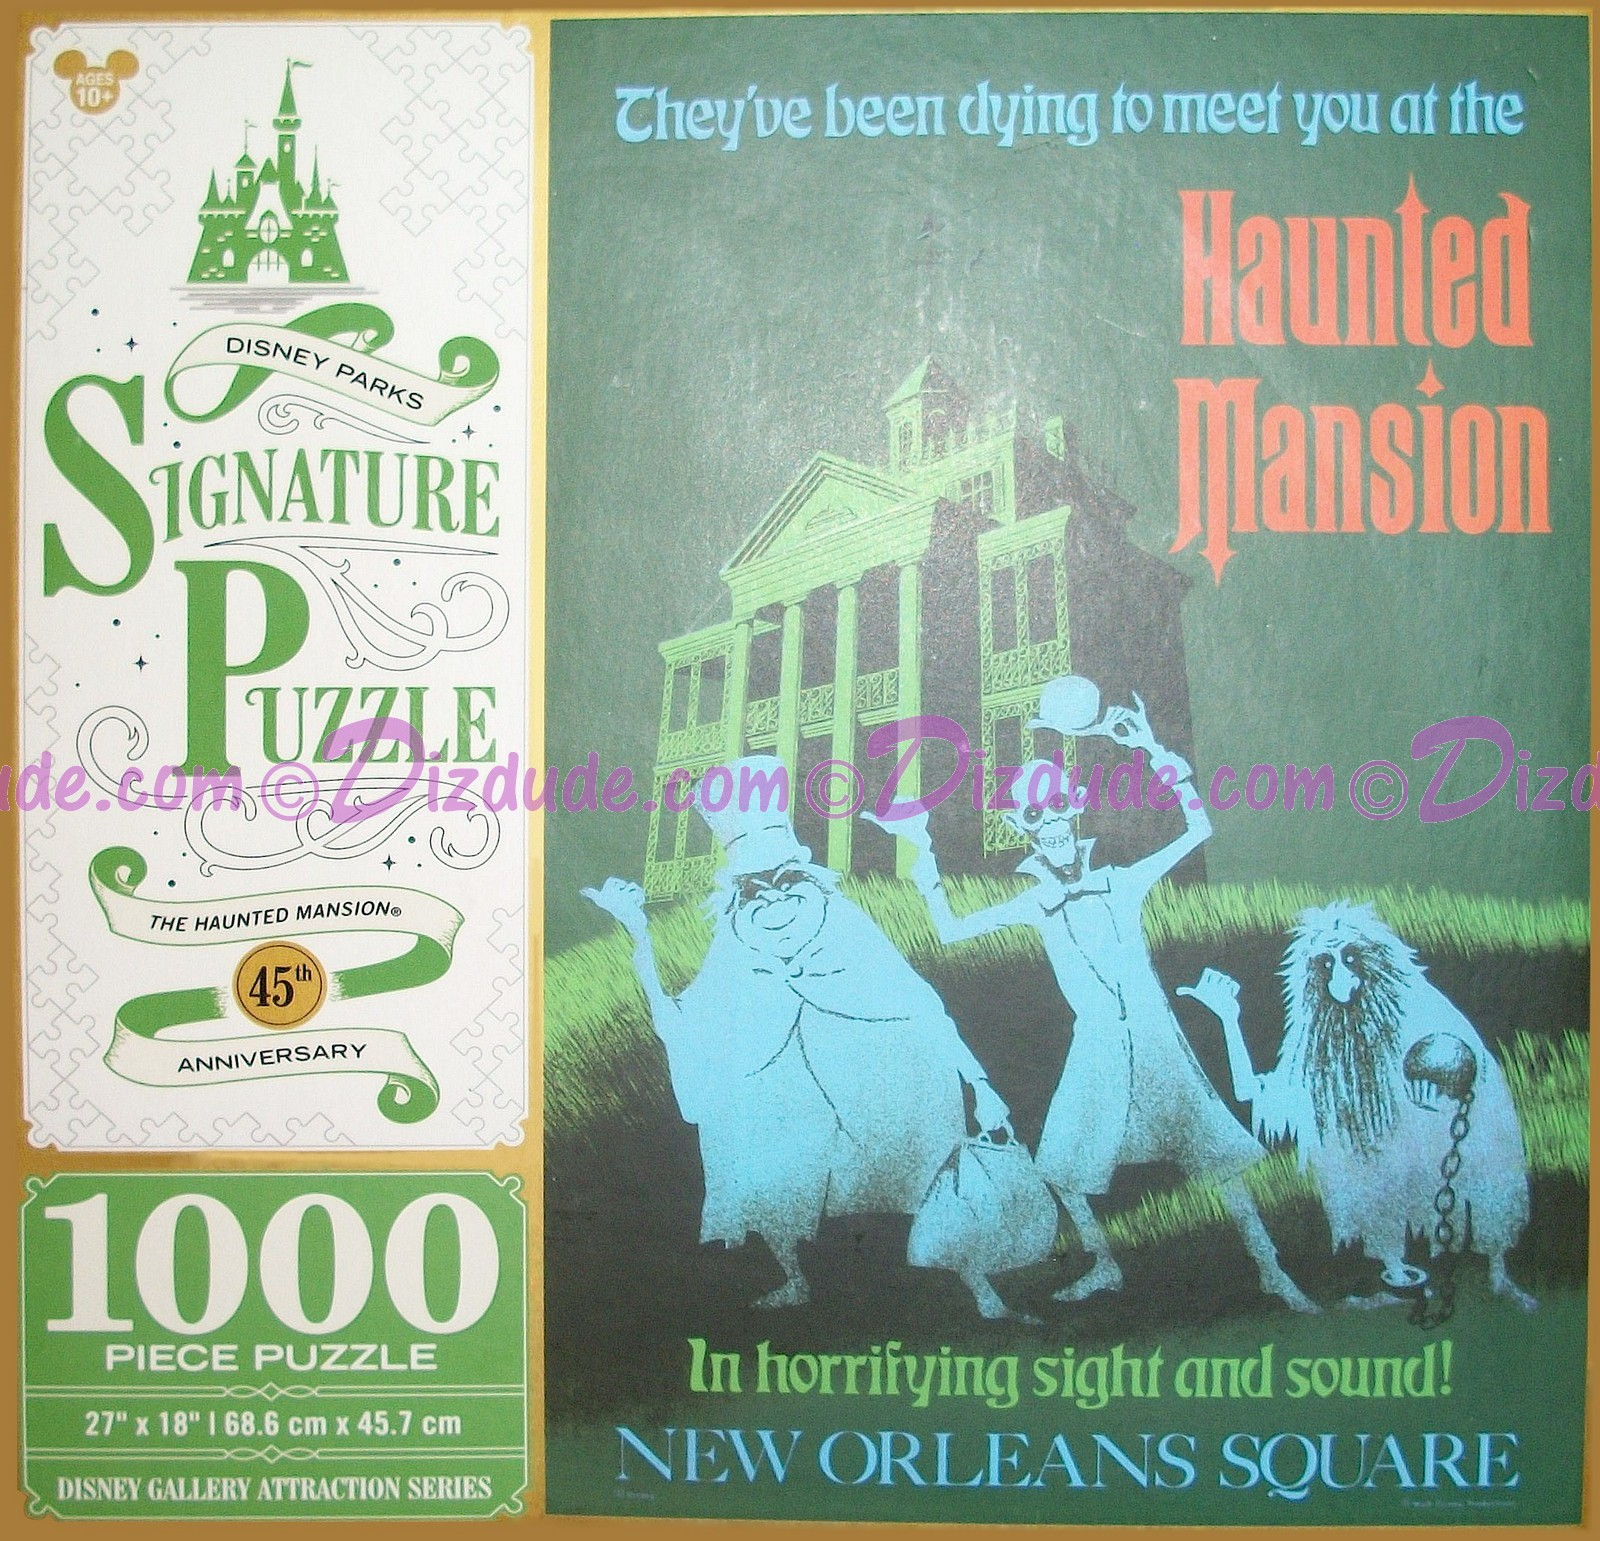 Haunted Mansion 45th Anniversary 1000 Piece Disney Signature Puzzle © Dizdude.com